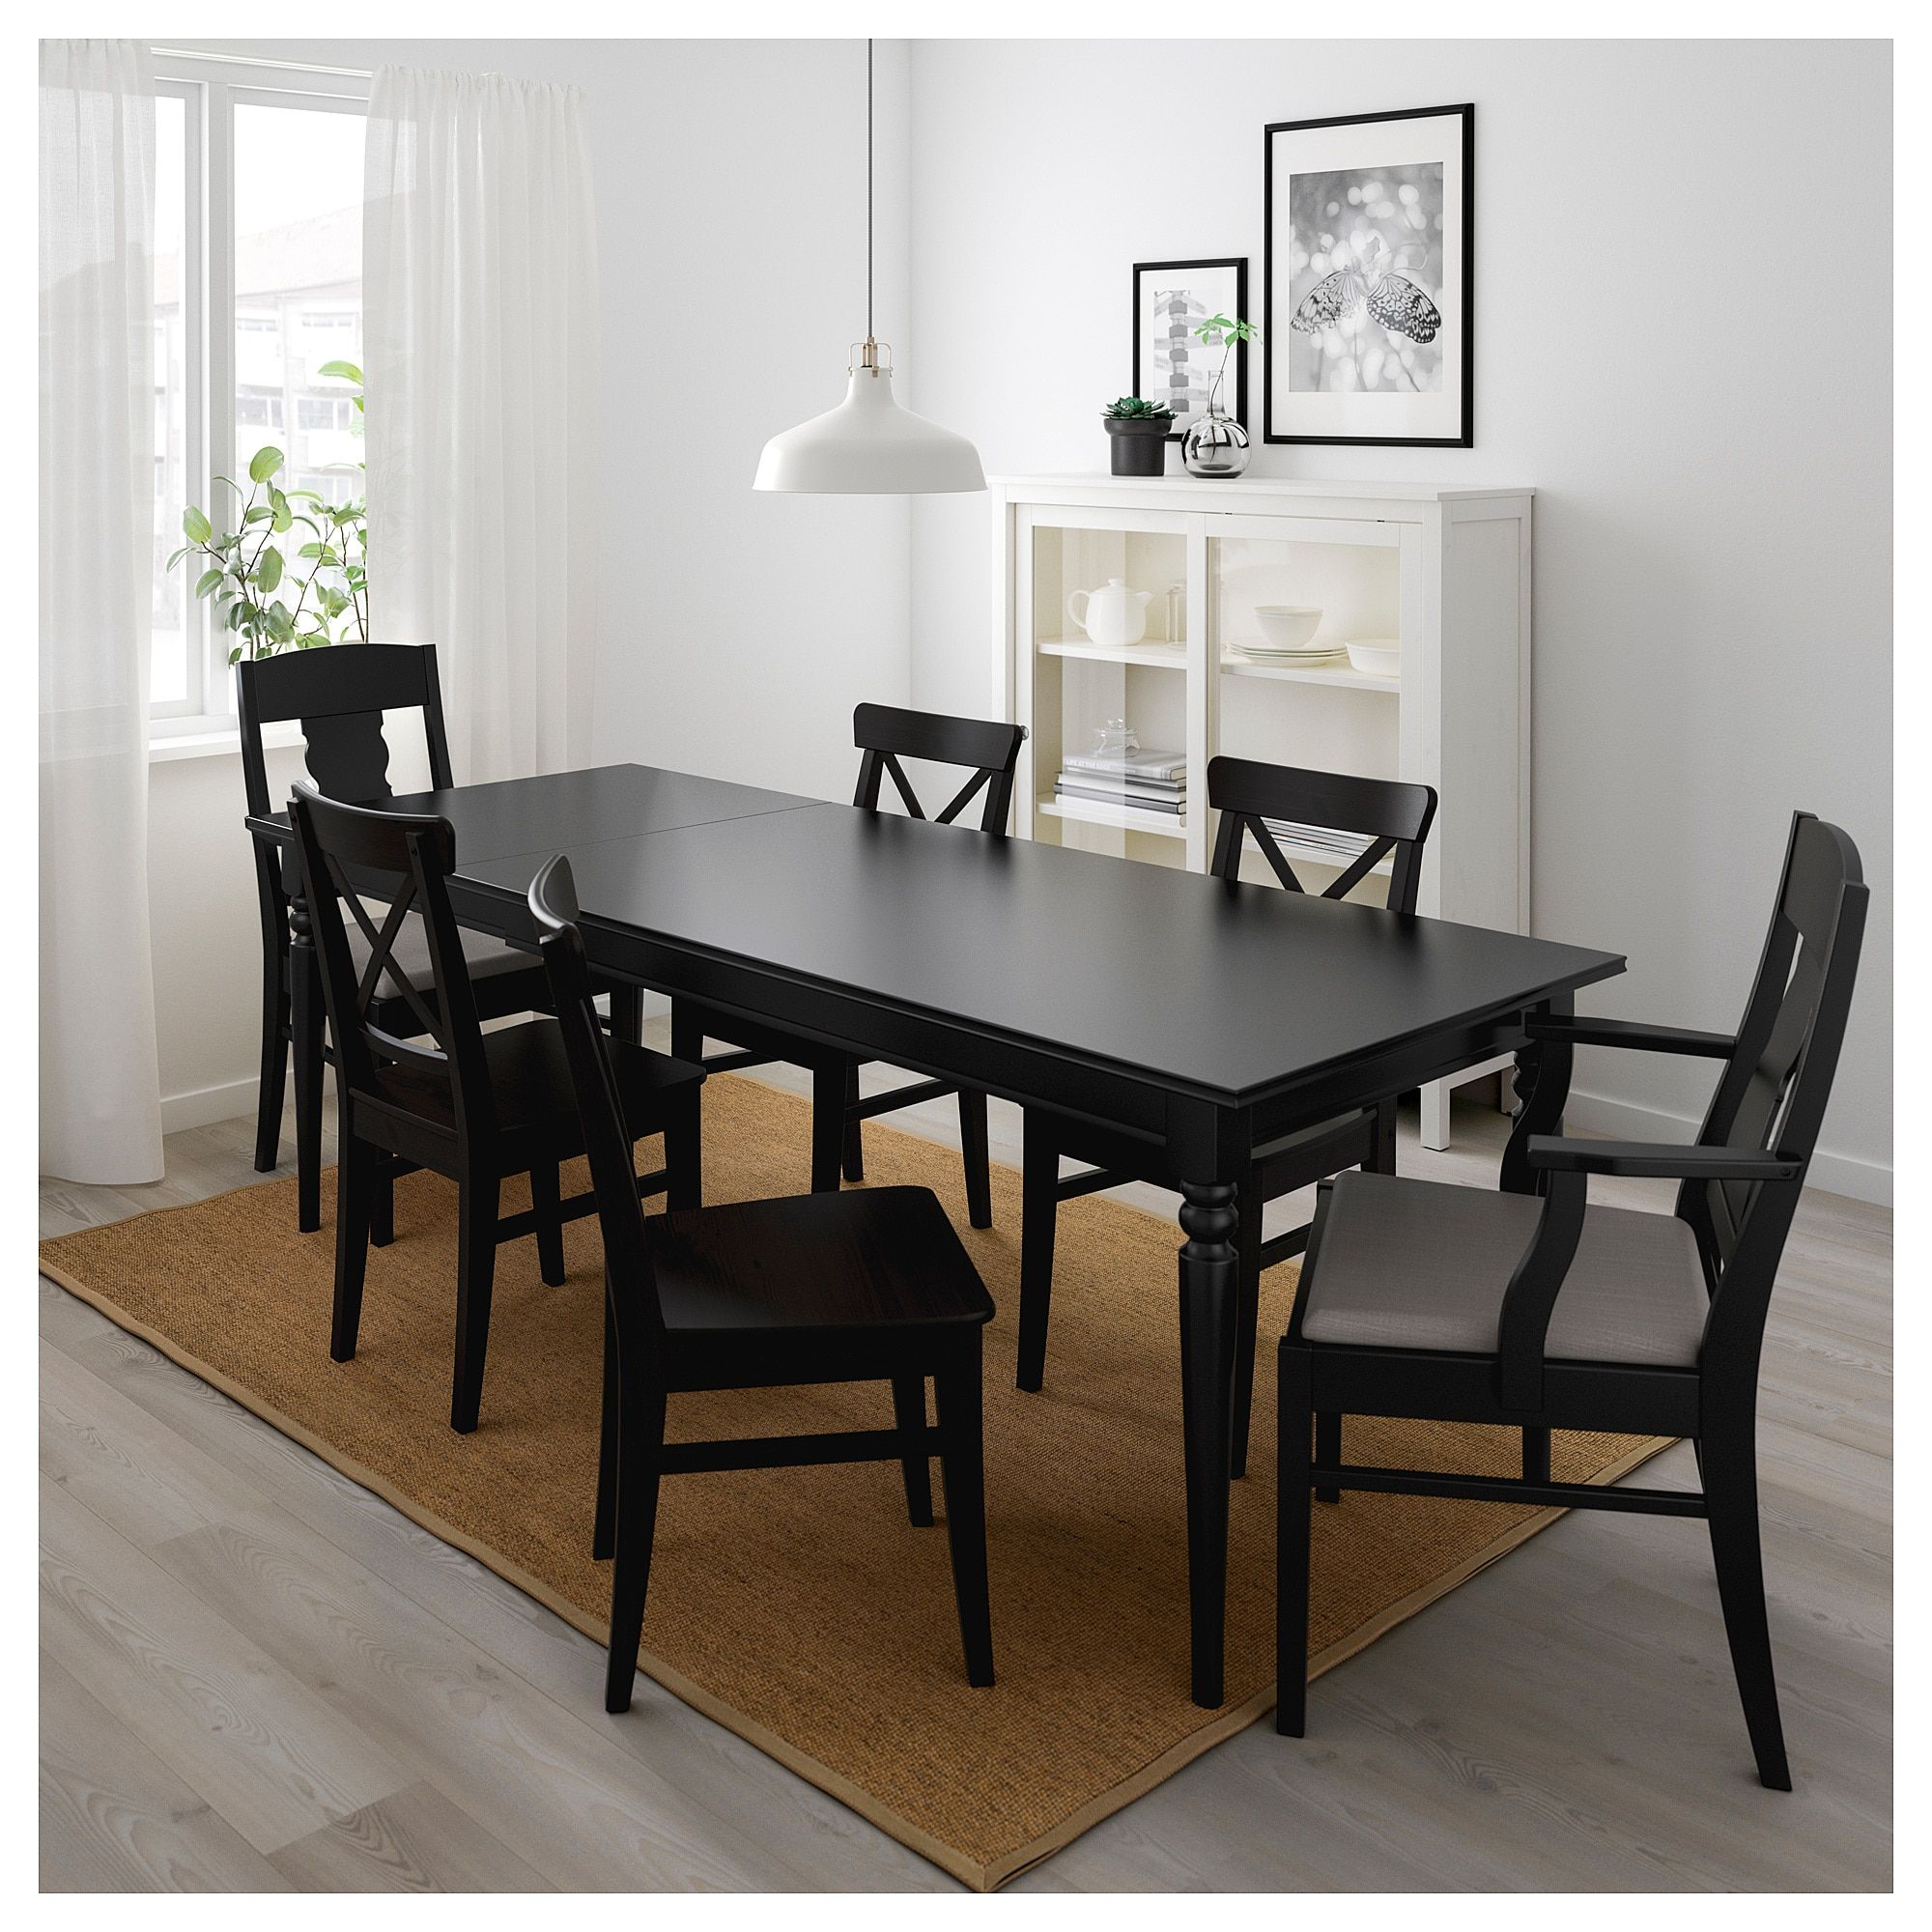 Ingatorp Extendable Table Black Find It Here Ikea Outdoor Dining Chair Cushions Dining Chair Cushions Small Living Room Chairs